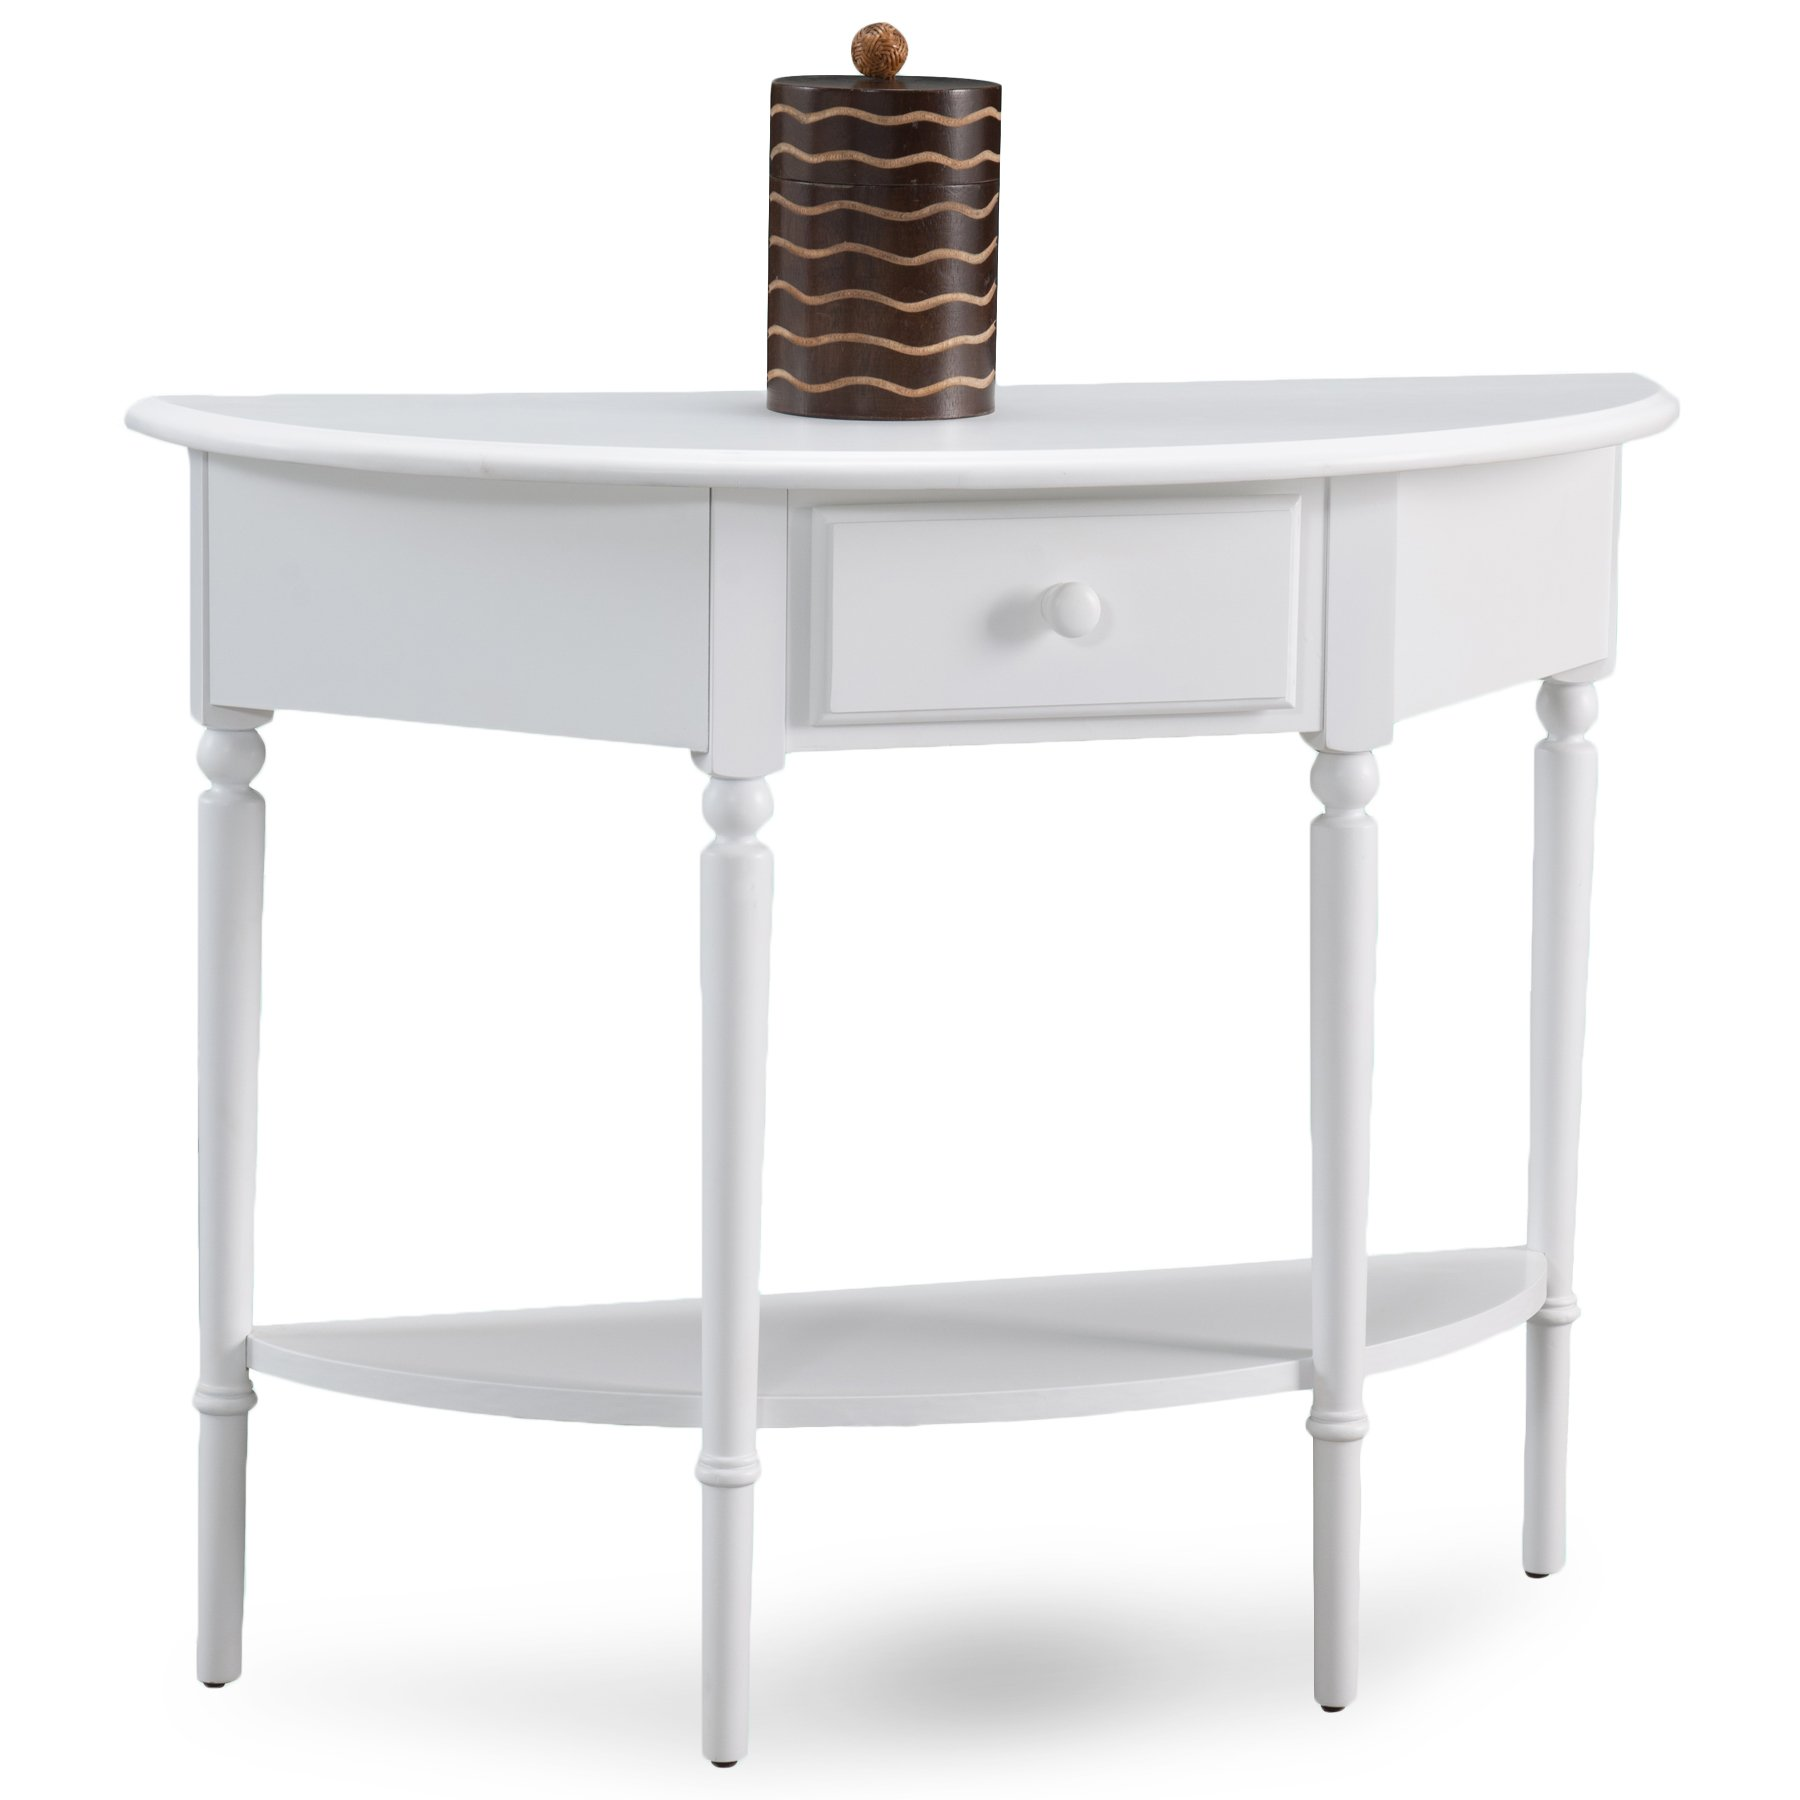 Leick 20036-WT Coastal Demilune Hall Stand/Sofa Table with Shelf, Orchid White